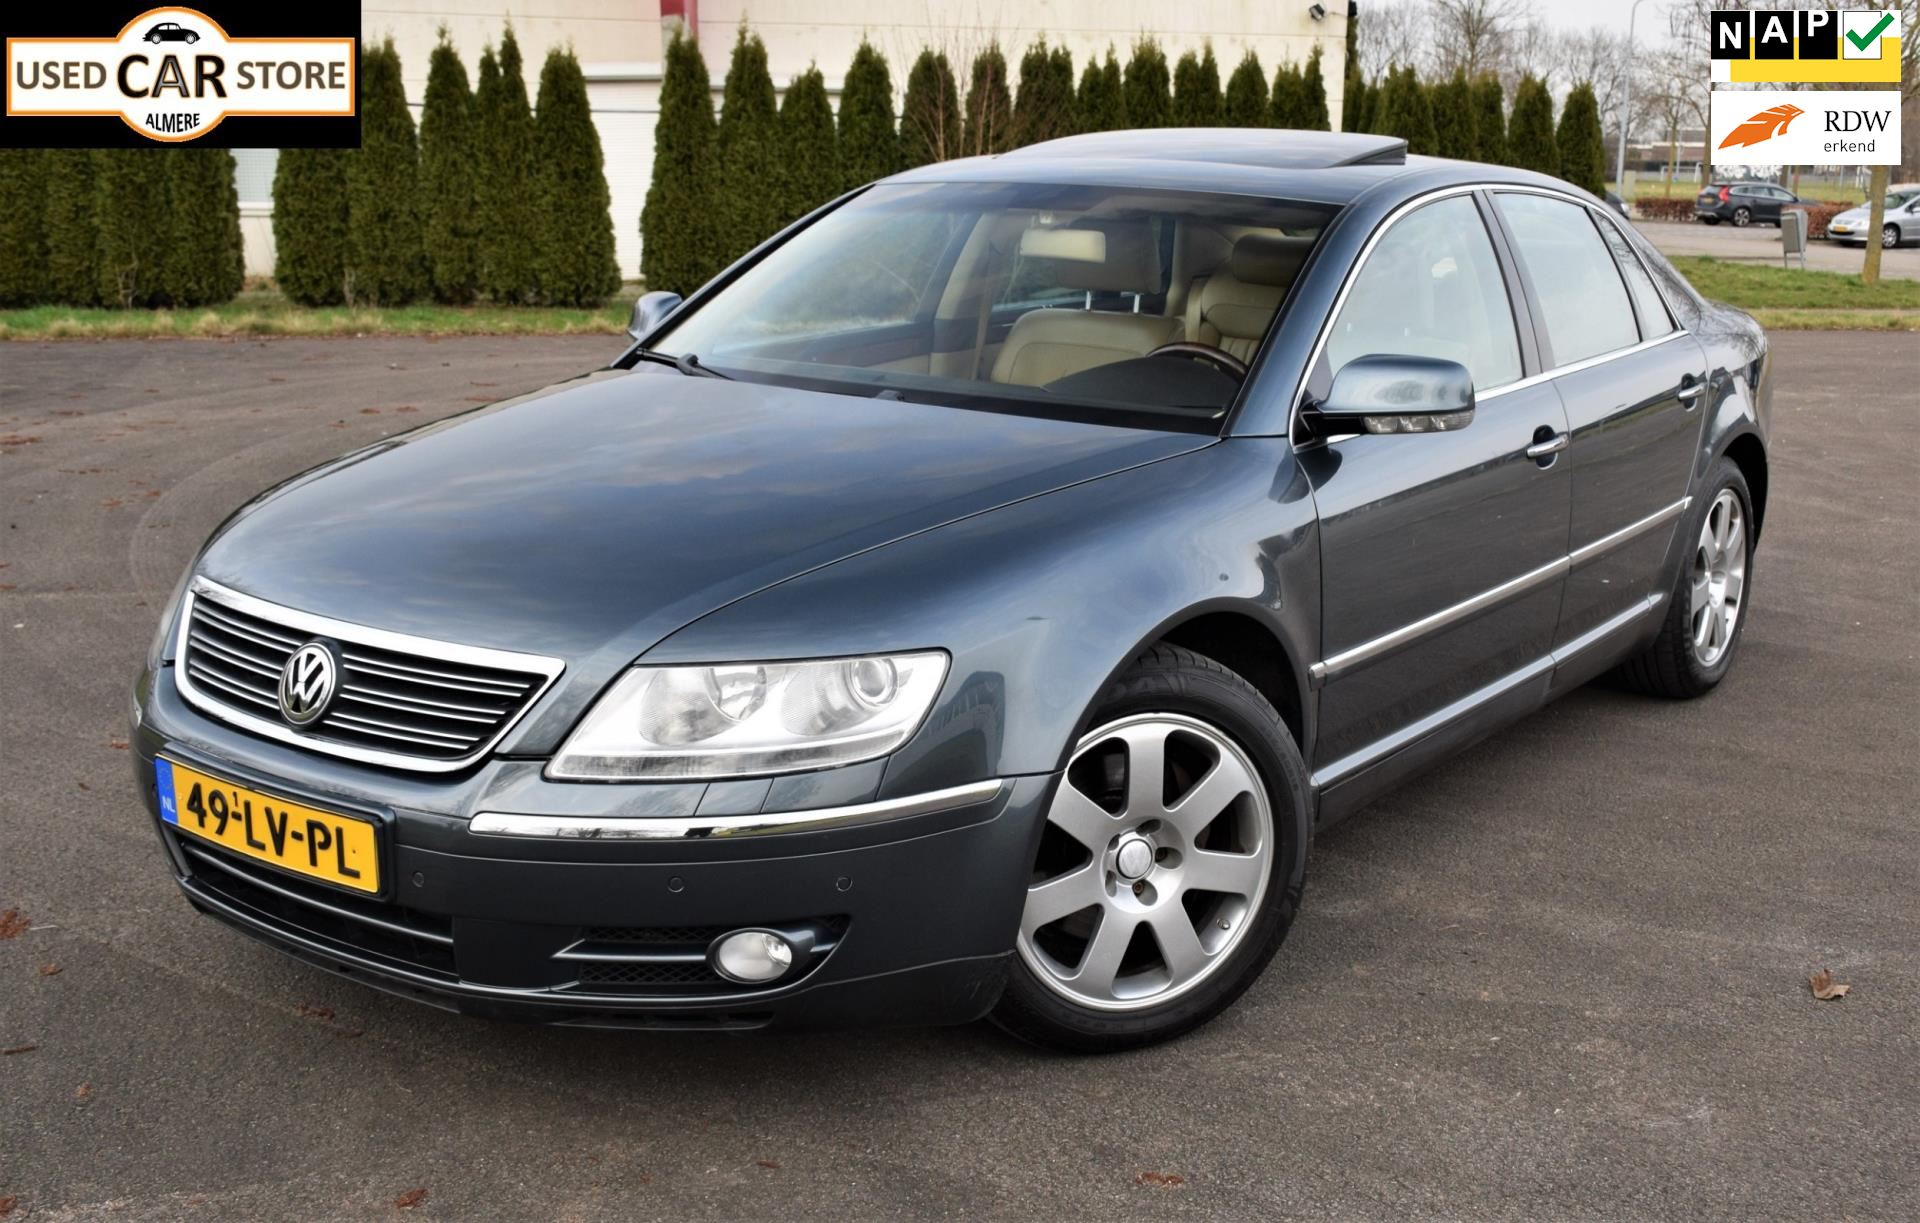 Volkswagen Phaeton occasion - Used Car Store Almere